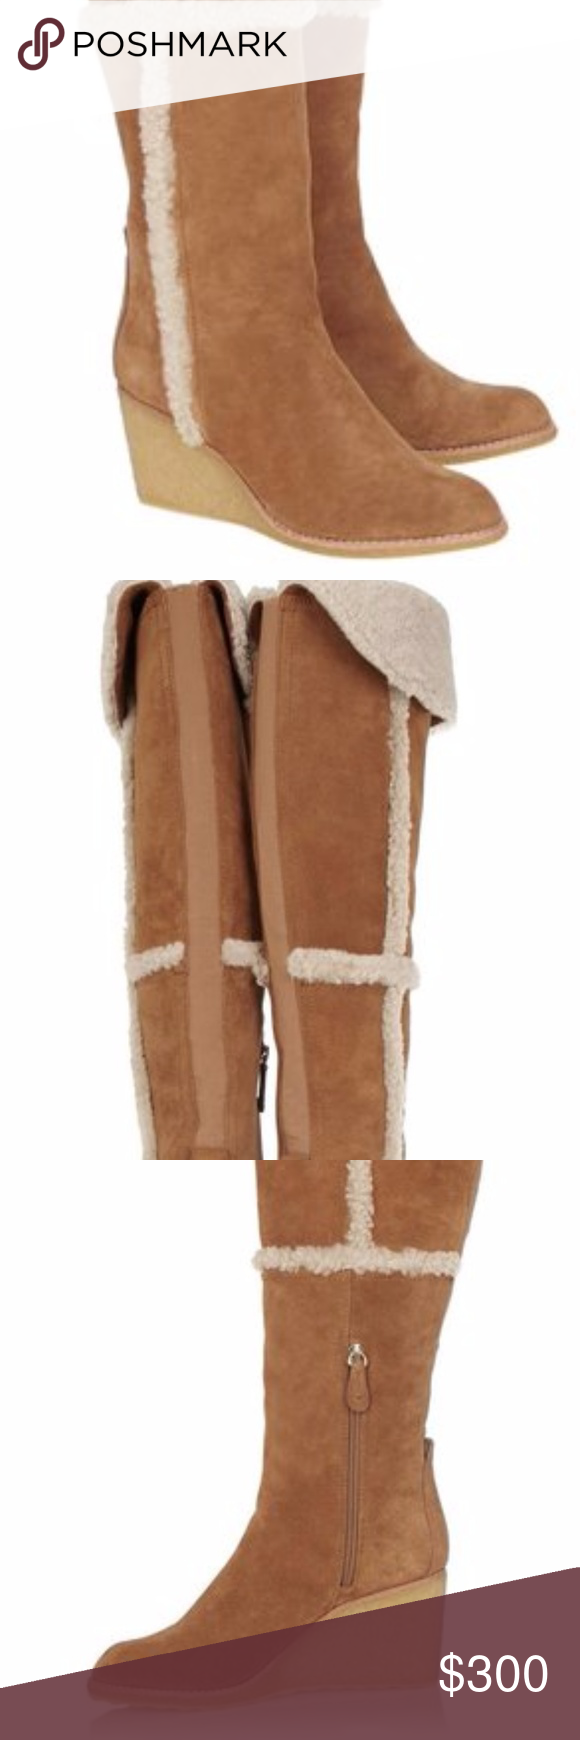 ed23bf1c56768 Tory Burch Cassius Shearling Over The Knee Boots 9 New without box New TORY  BURCH  Cassius  Shearling Lined Over-the-Knee Wedge Boots Size 9 New  Without Box ...